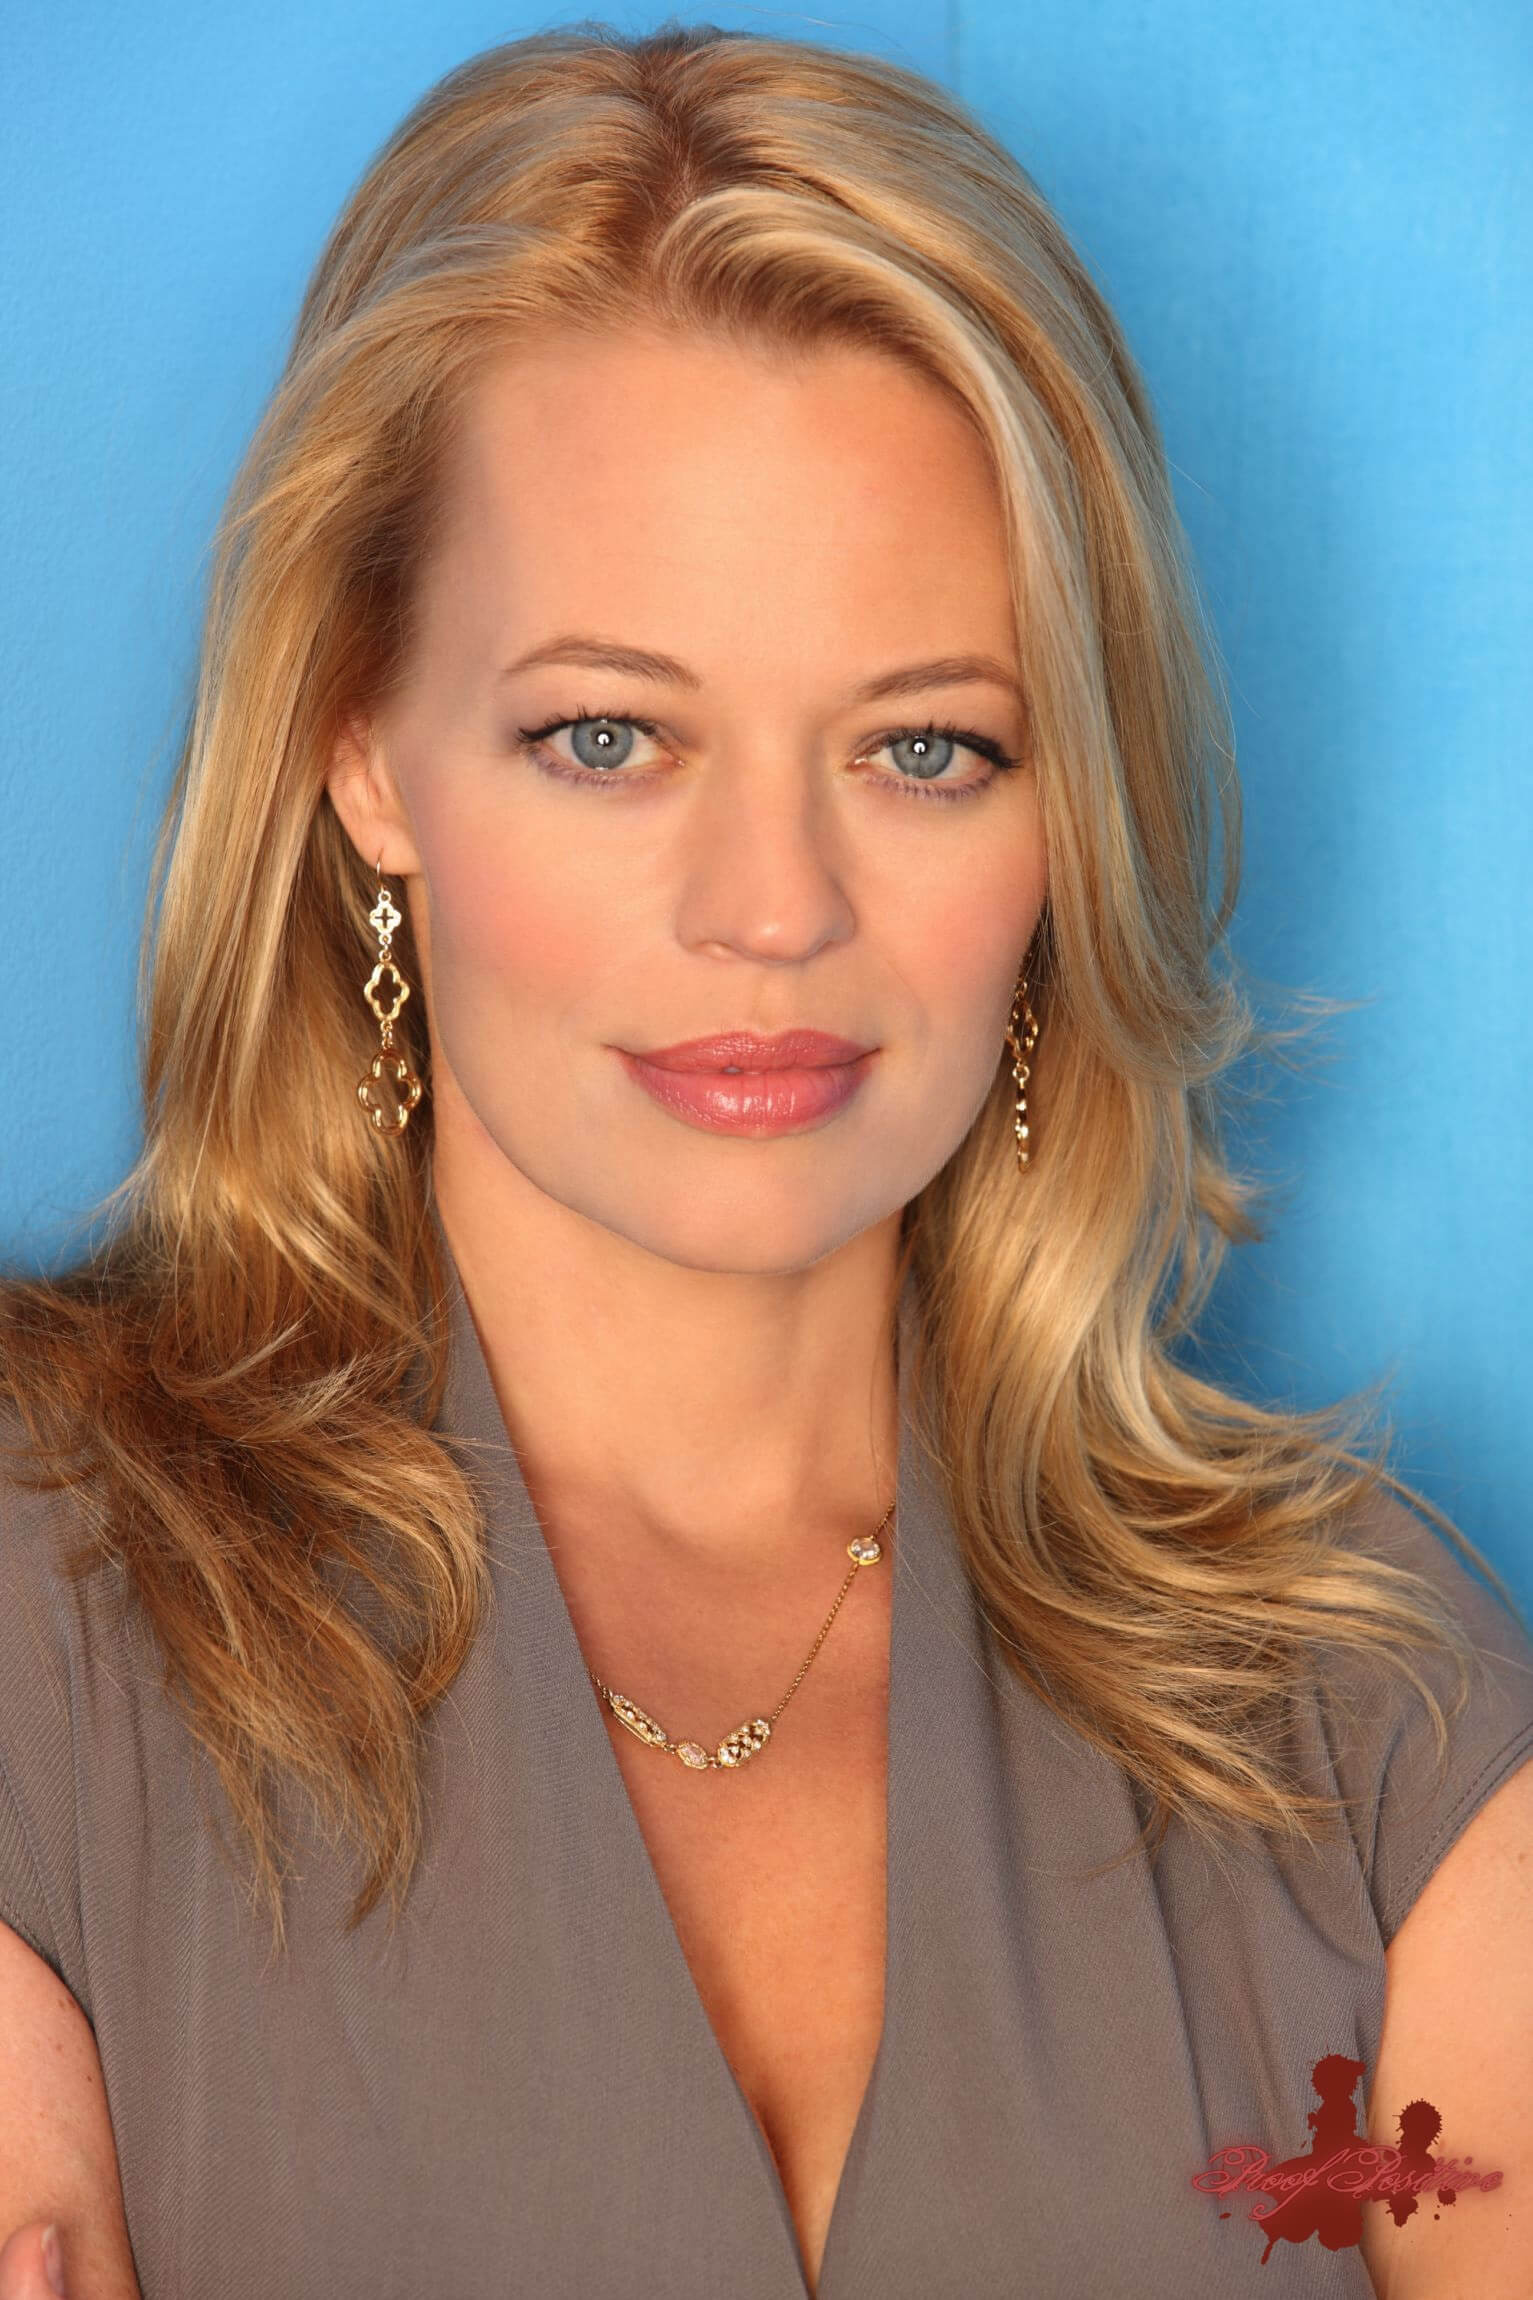 61 Jeri Ryan Hot Pictures Which Make Certain To Grab Your -1812